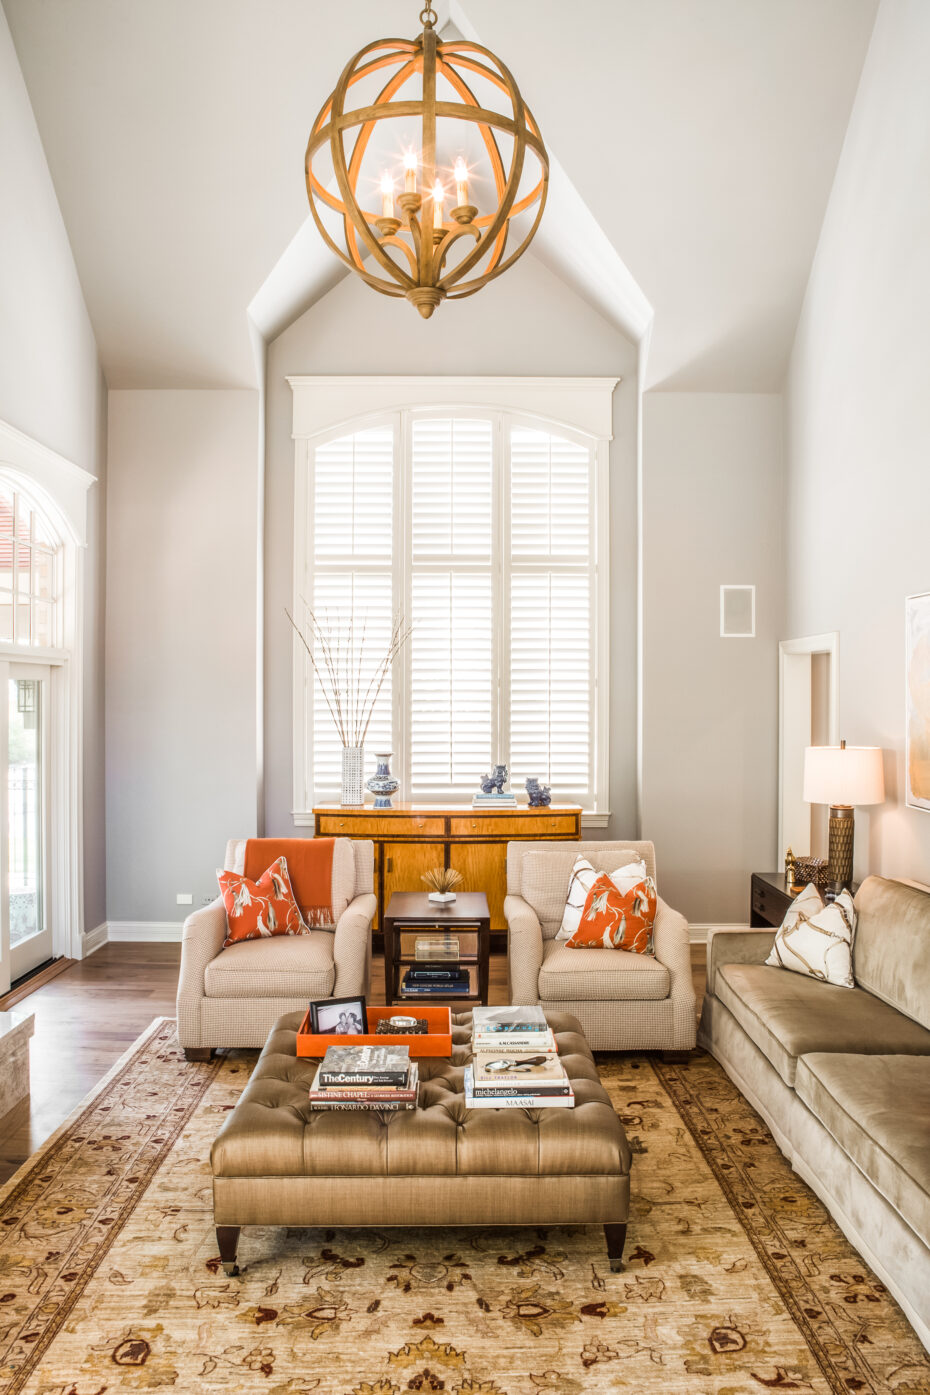 living room with volume ceilings, curry and co light fixture, neutral color with orange accents